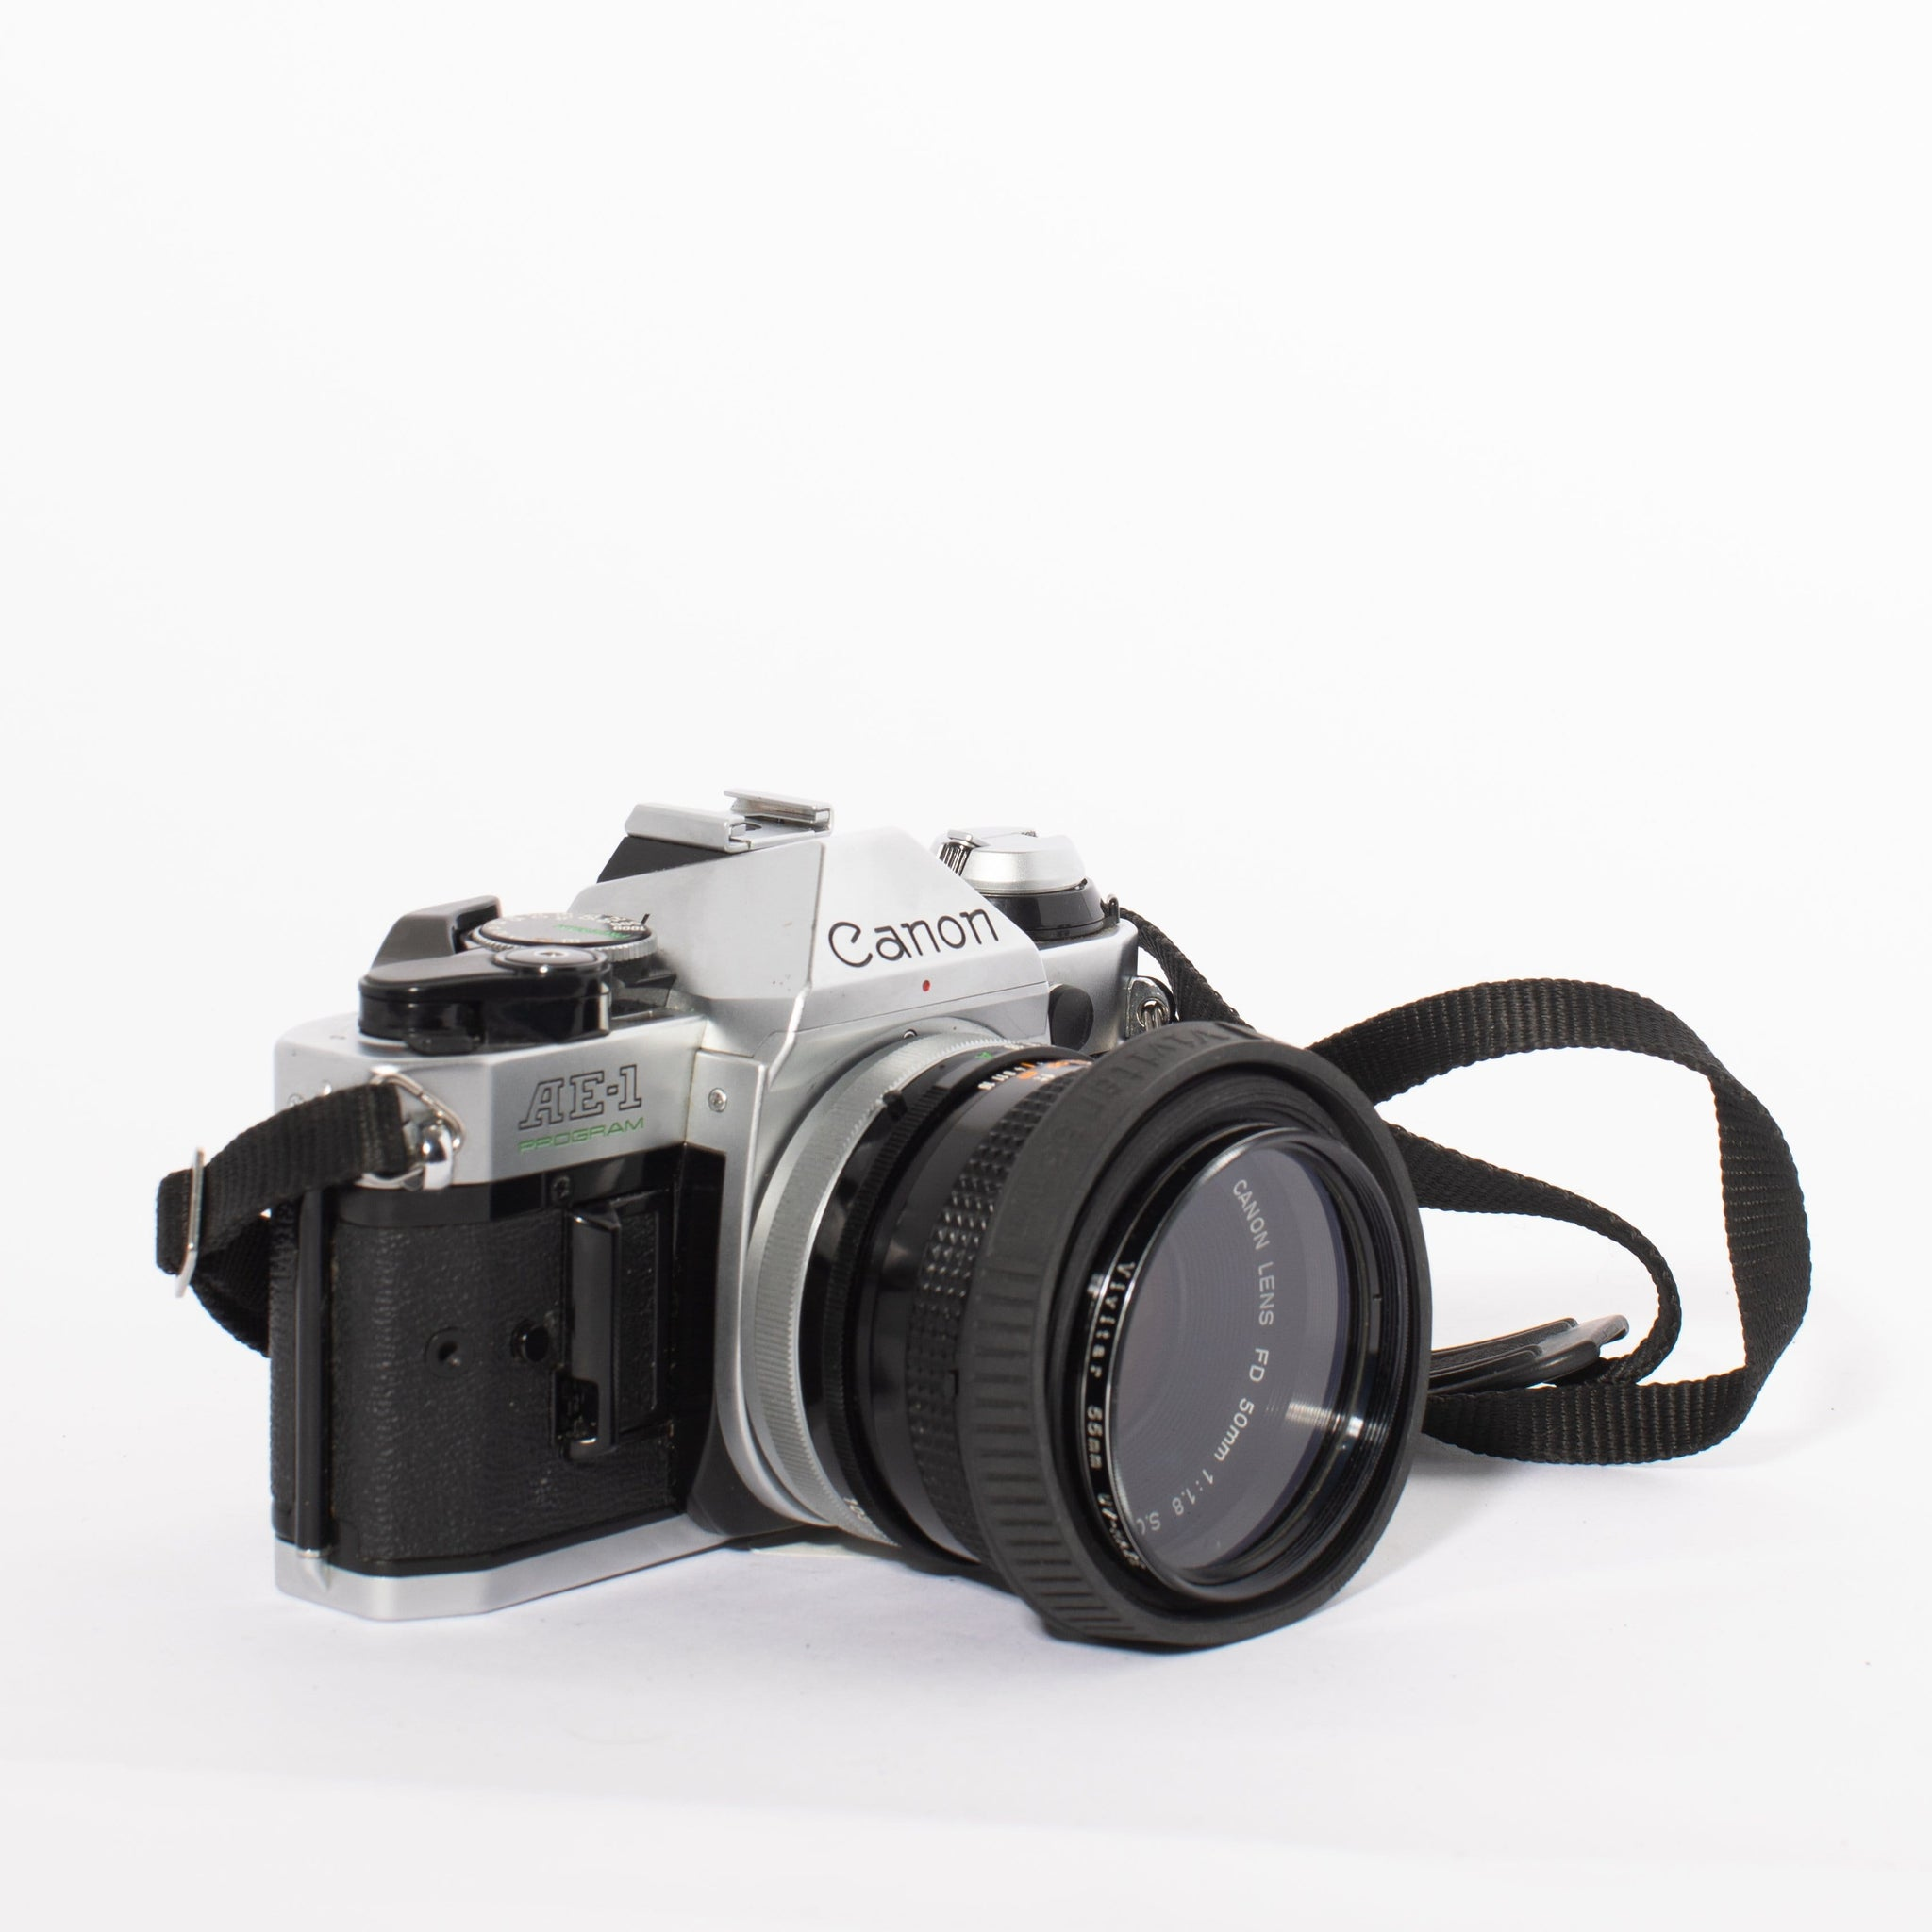 Canon AE-1 Program with 50mm f/1.8 SC Lens